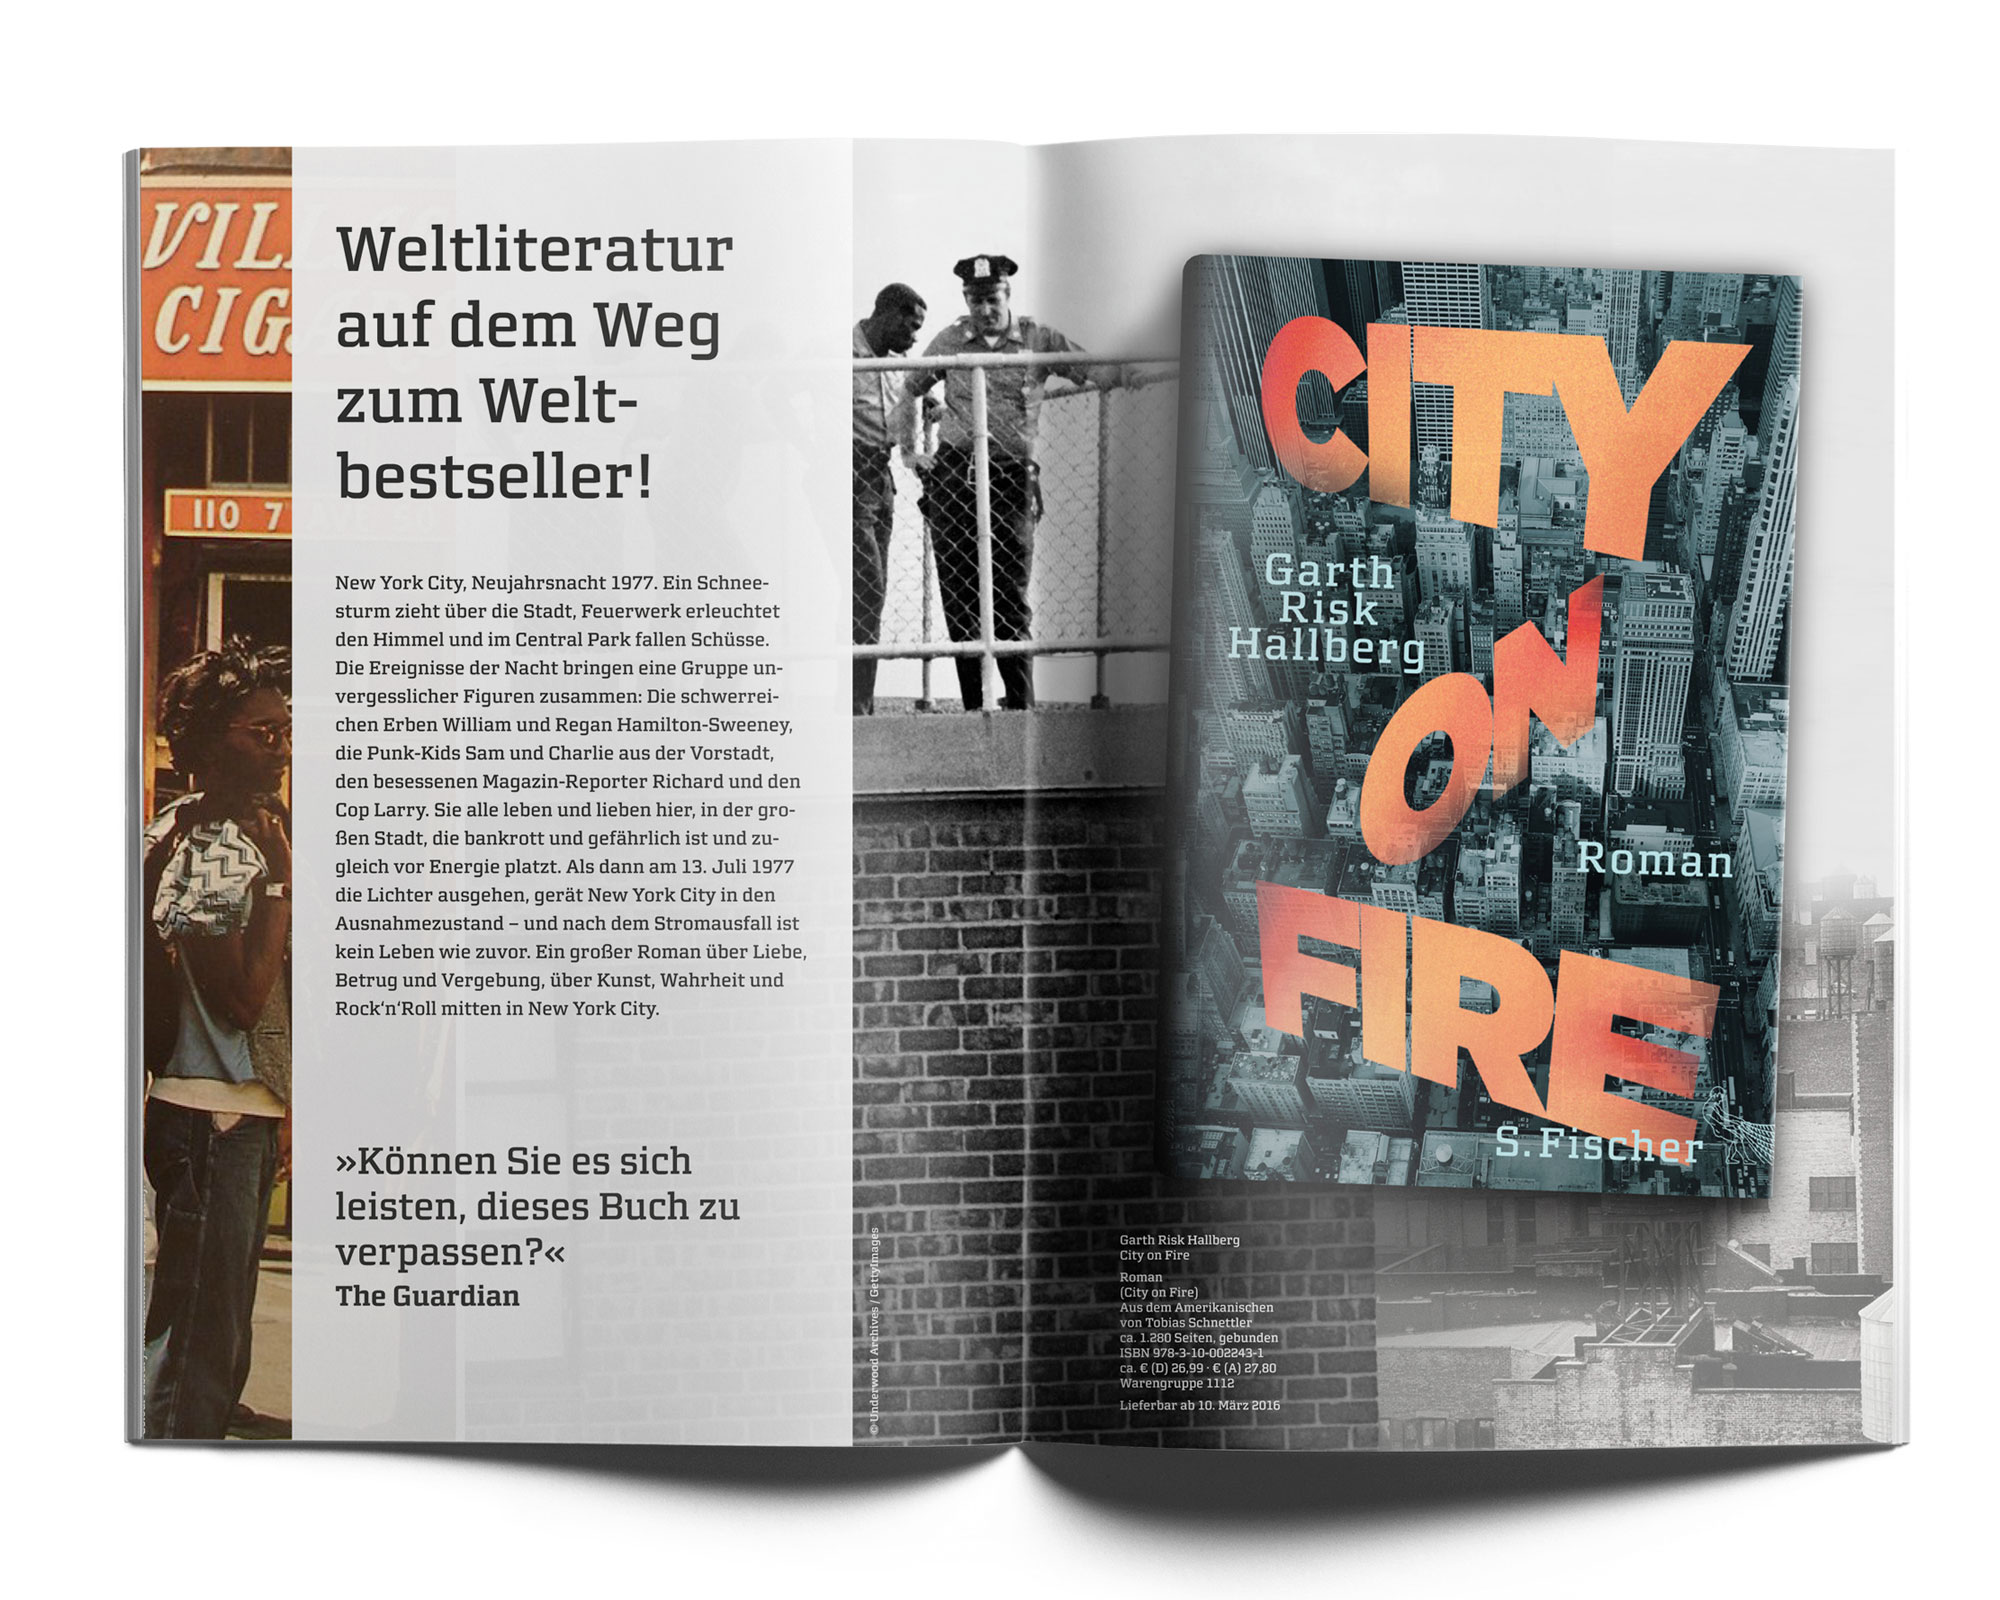 Fischer – Garth Risk Hallberg; City on fire Handelsfolder